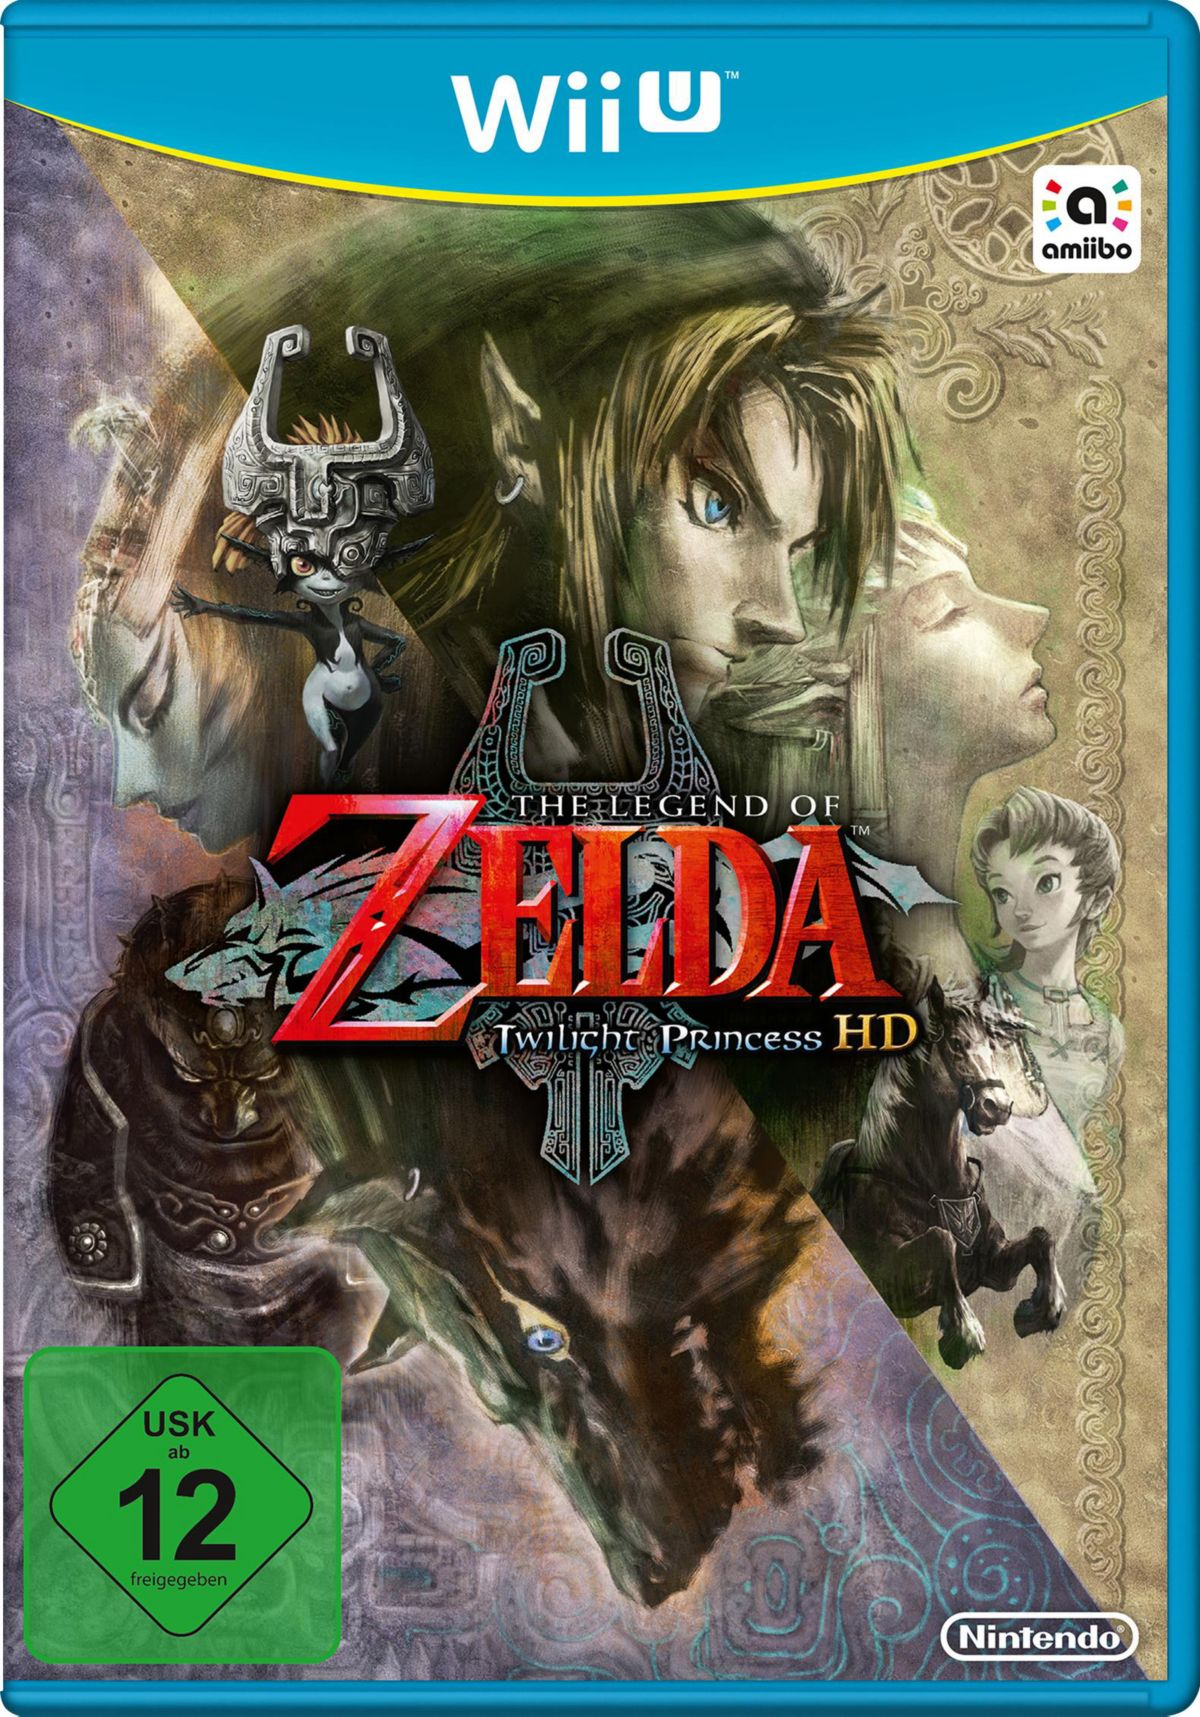 The Legend of Zelda: Twilight Princess HD Ninte...